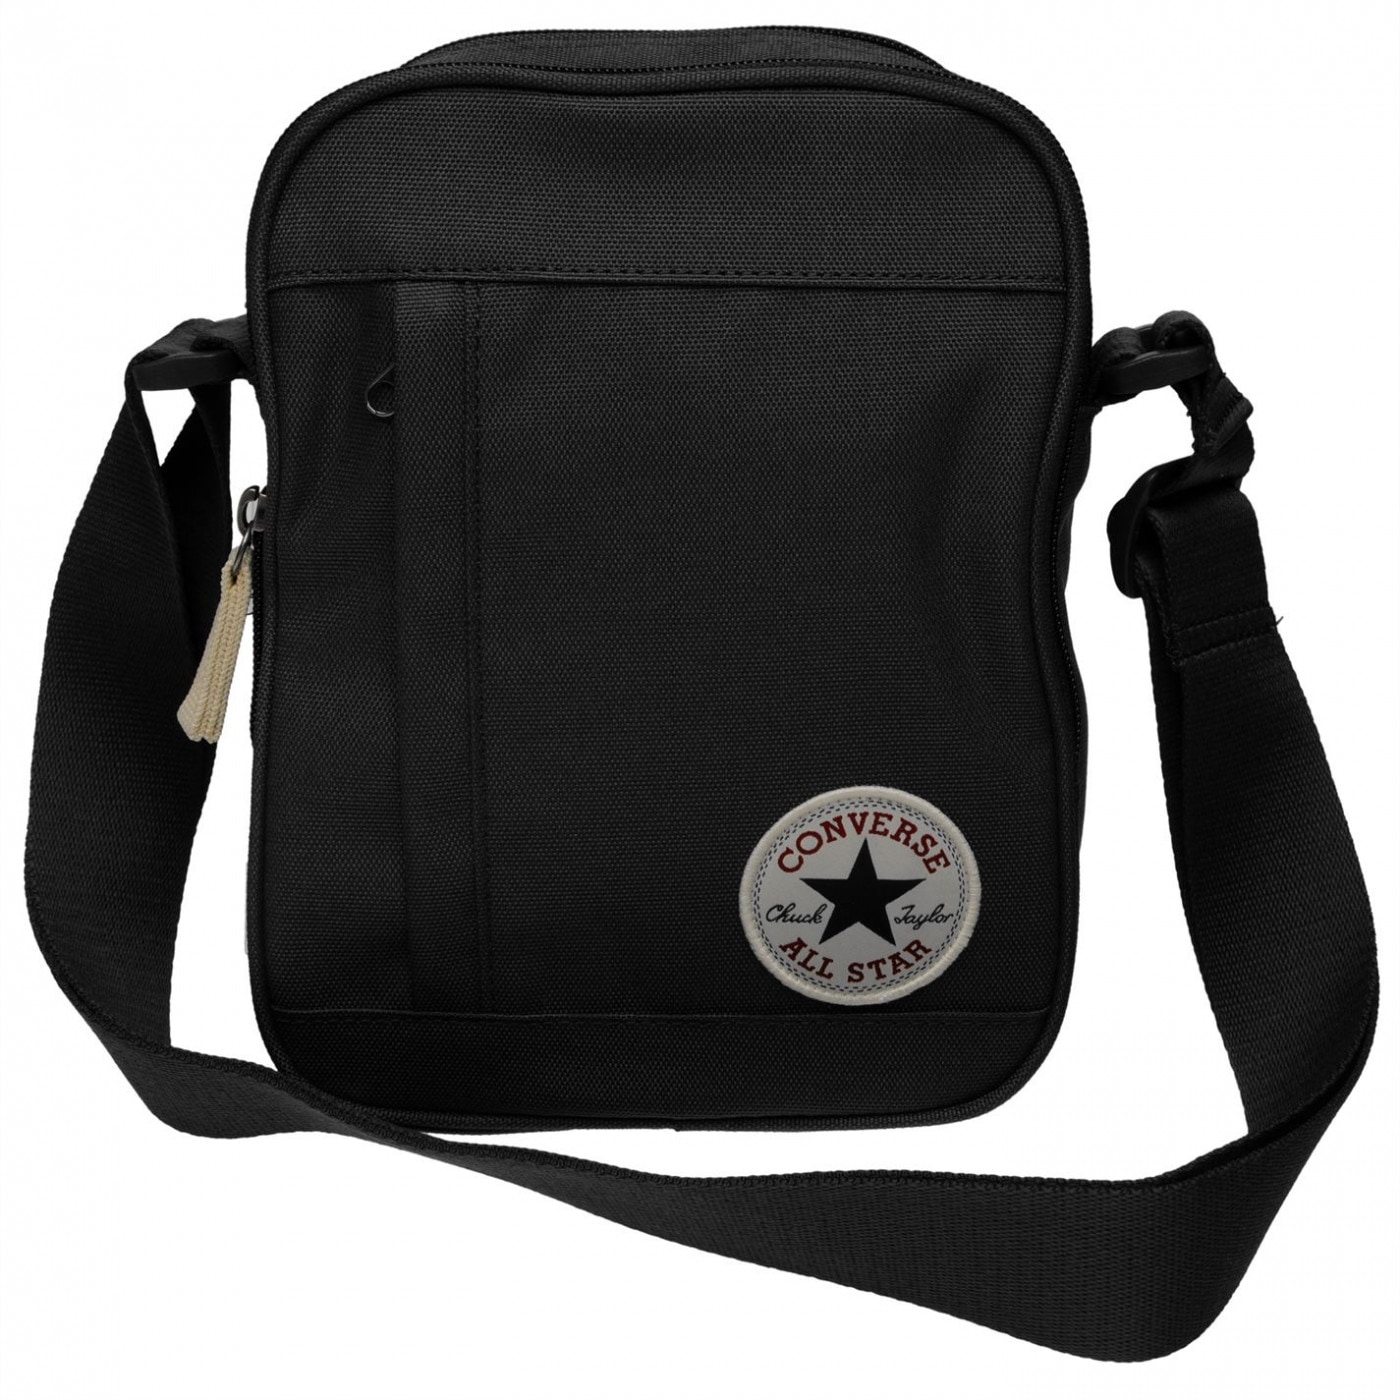 Converse Stash Bag